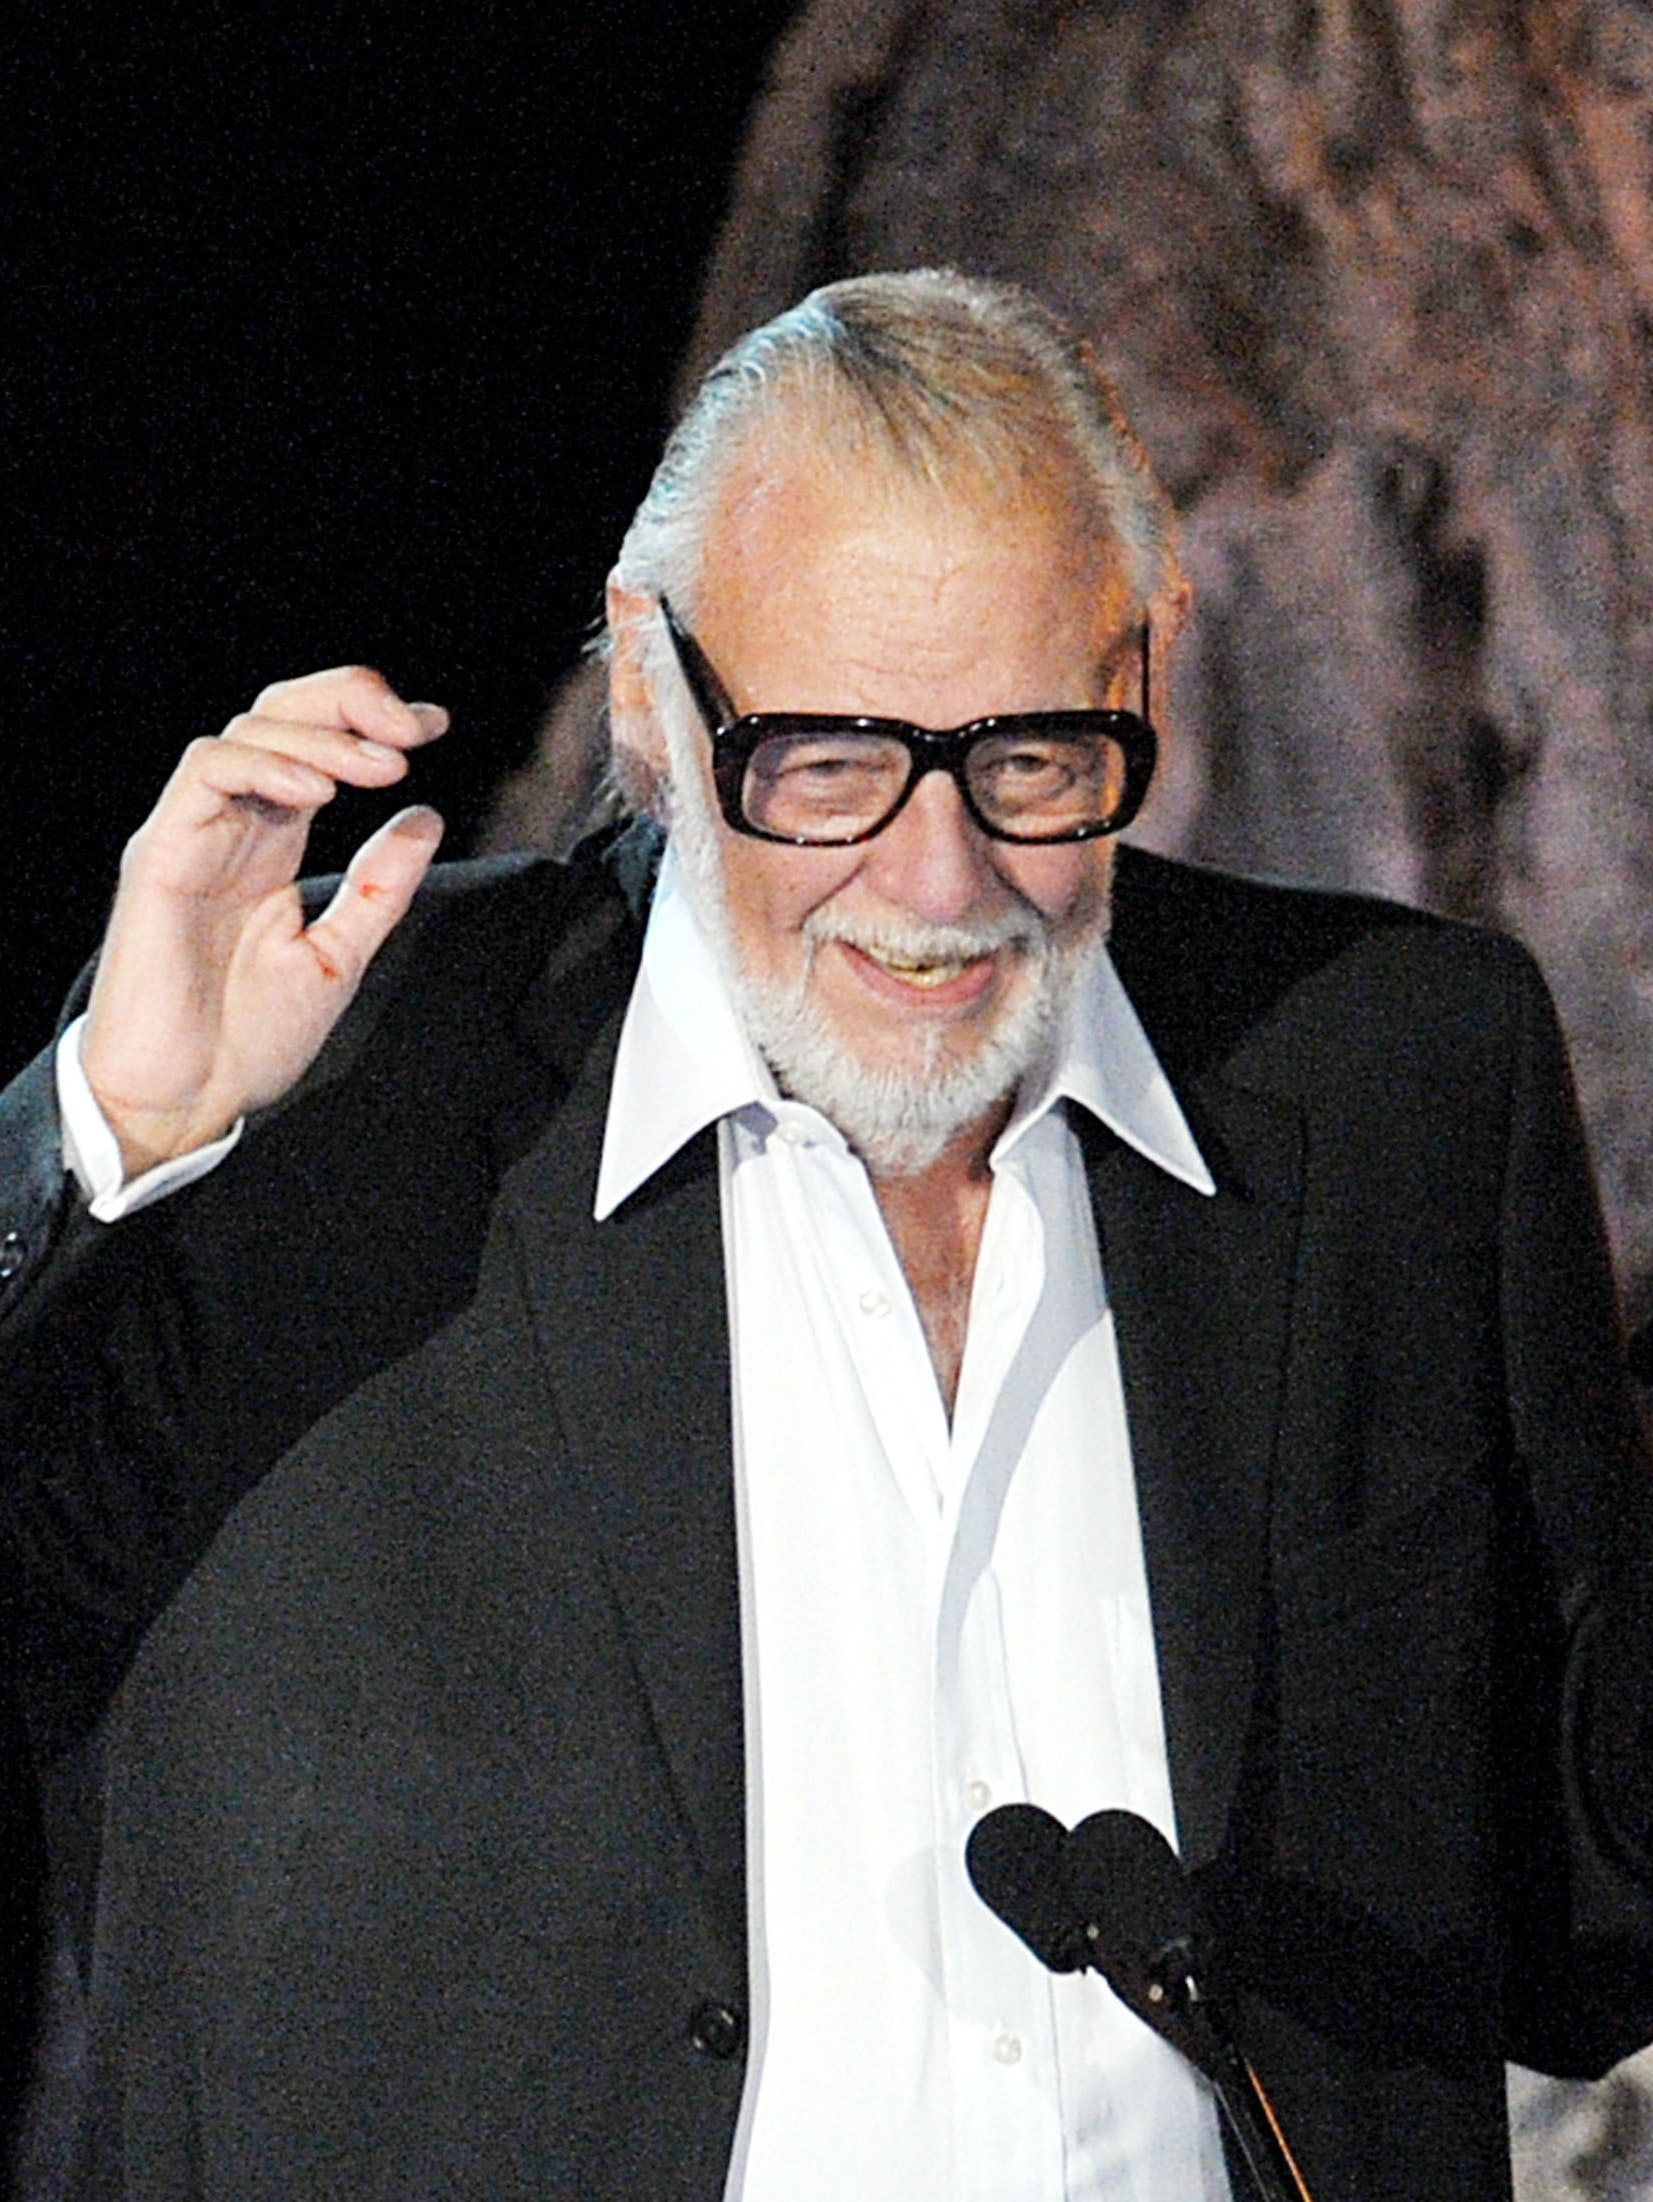 LOS ANGELES, CA - OCTOBER 17:  Director George A. Romero accepts the Mastermind Award onstage during Spike TV's Scream 2009 held at the Greek Theatre on October 17, 2009 in Los Angeles, California.  (Photo by Kevin Winter/Getty Images)